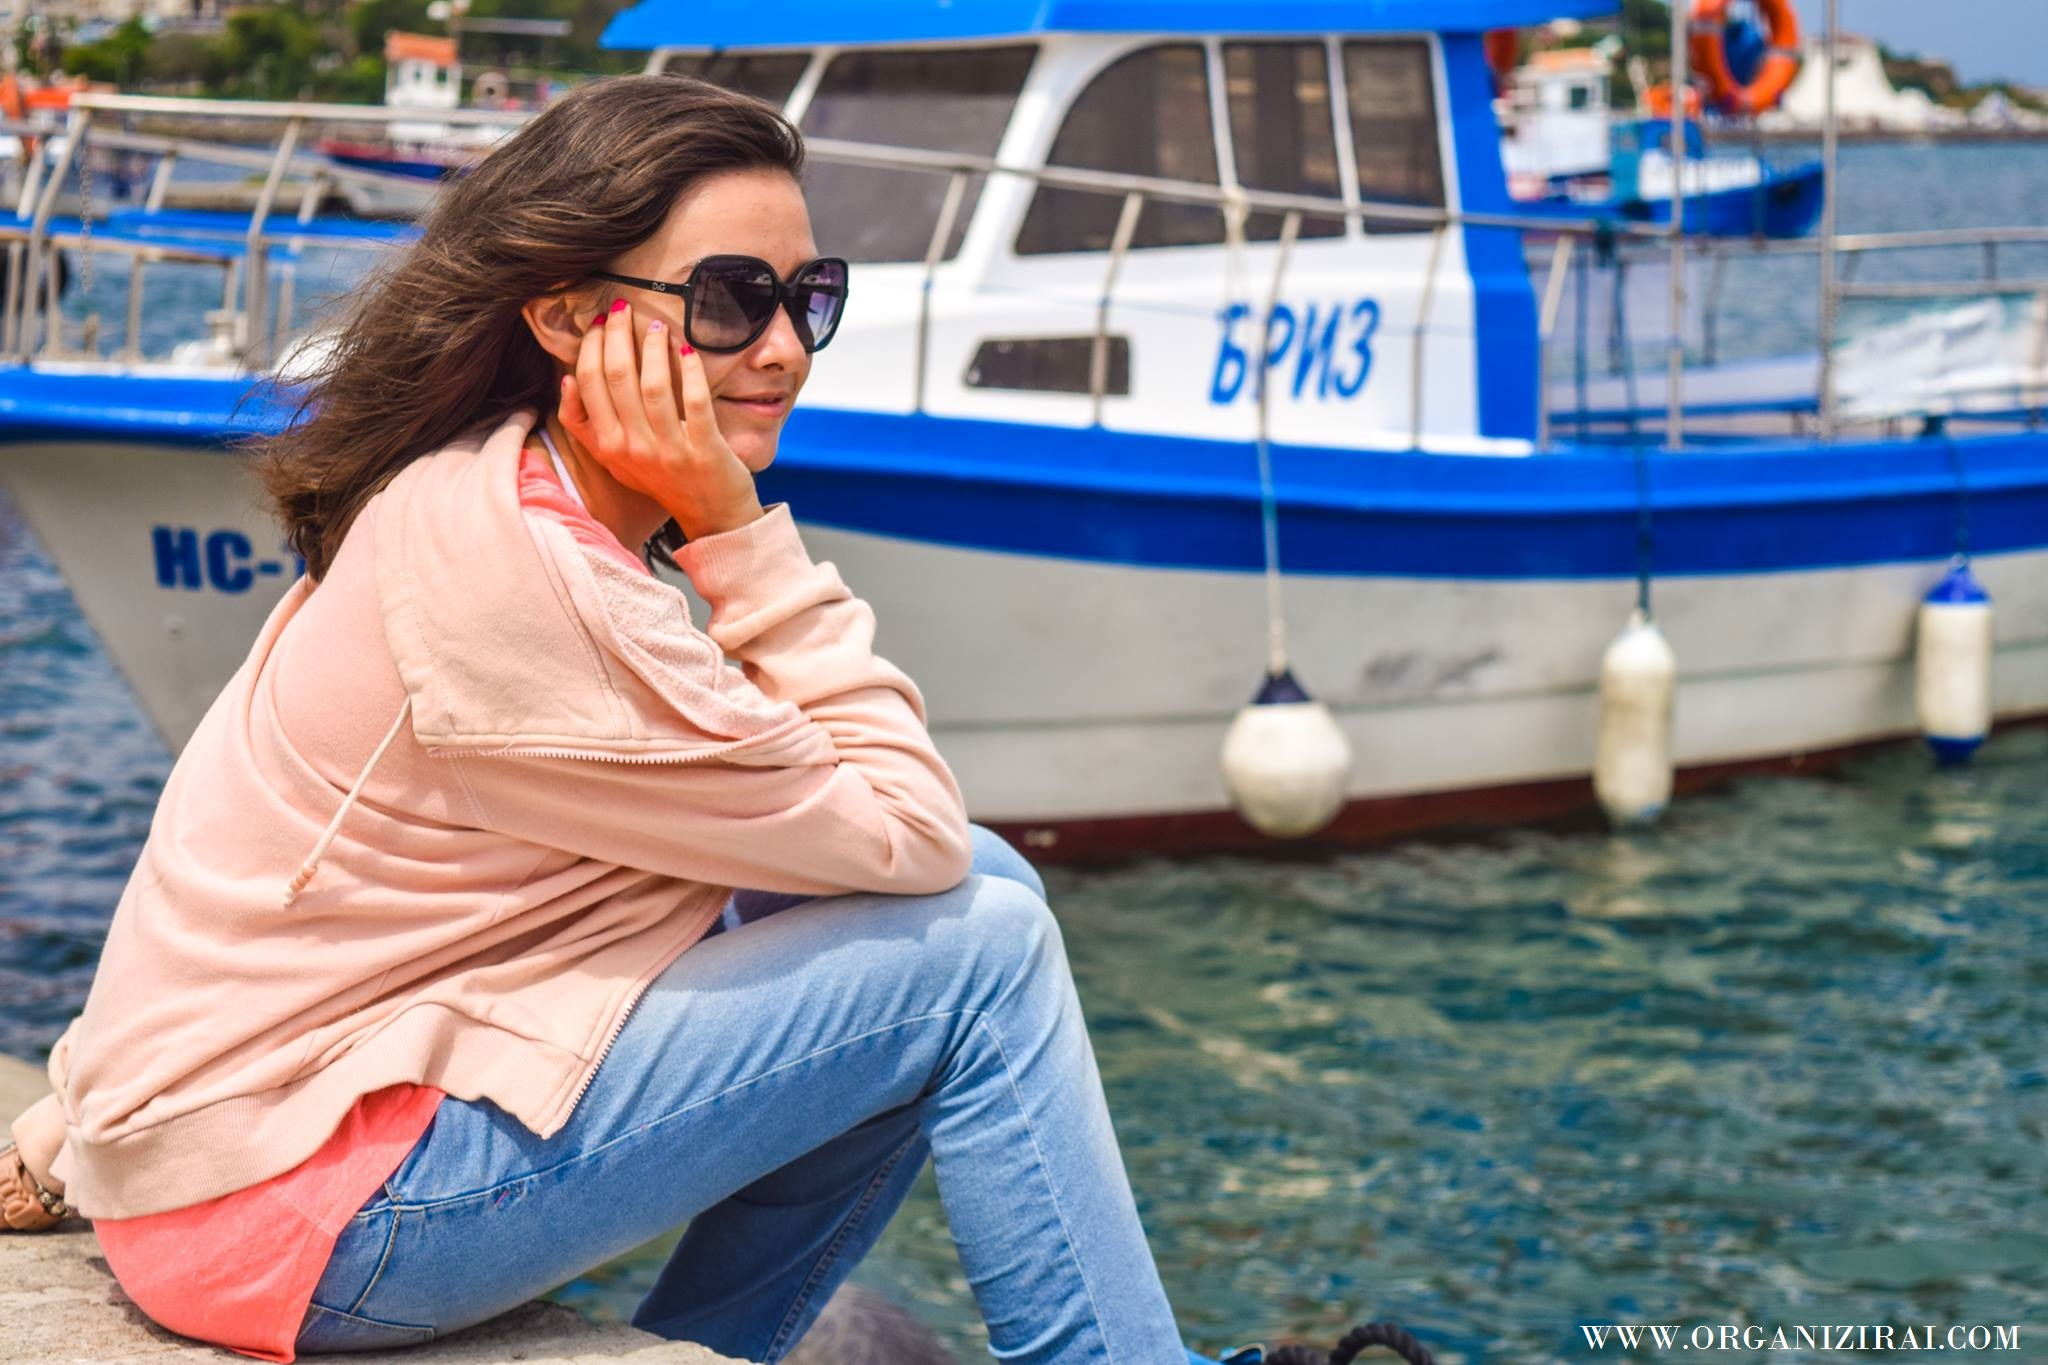 BOAT_SEA-VIBES-VIBRATION-SUMMER-PINK-HOODIE-INSPIRATION-BEST-LIFESTYLE-BLOGS-BULGARIAN-BLOGGERS-ORGANIZIRAI.COM7